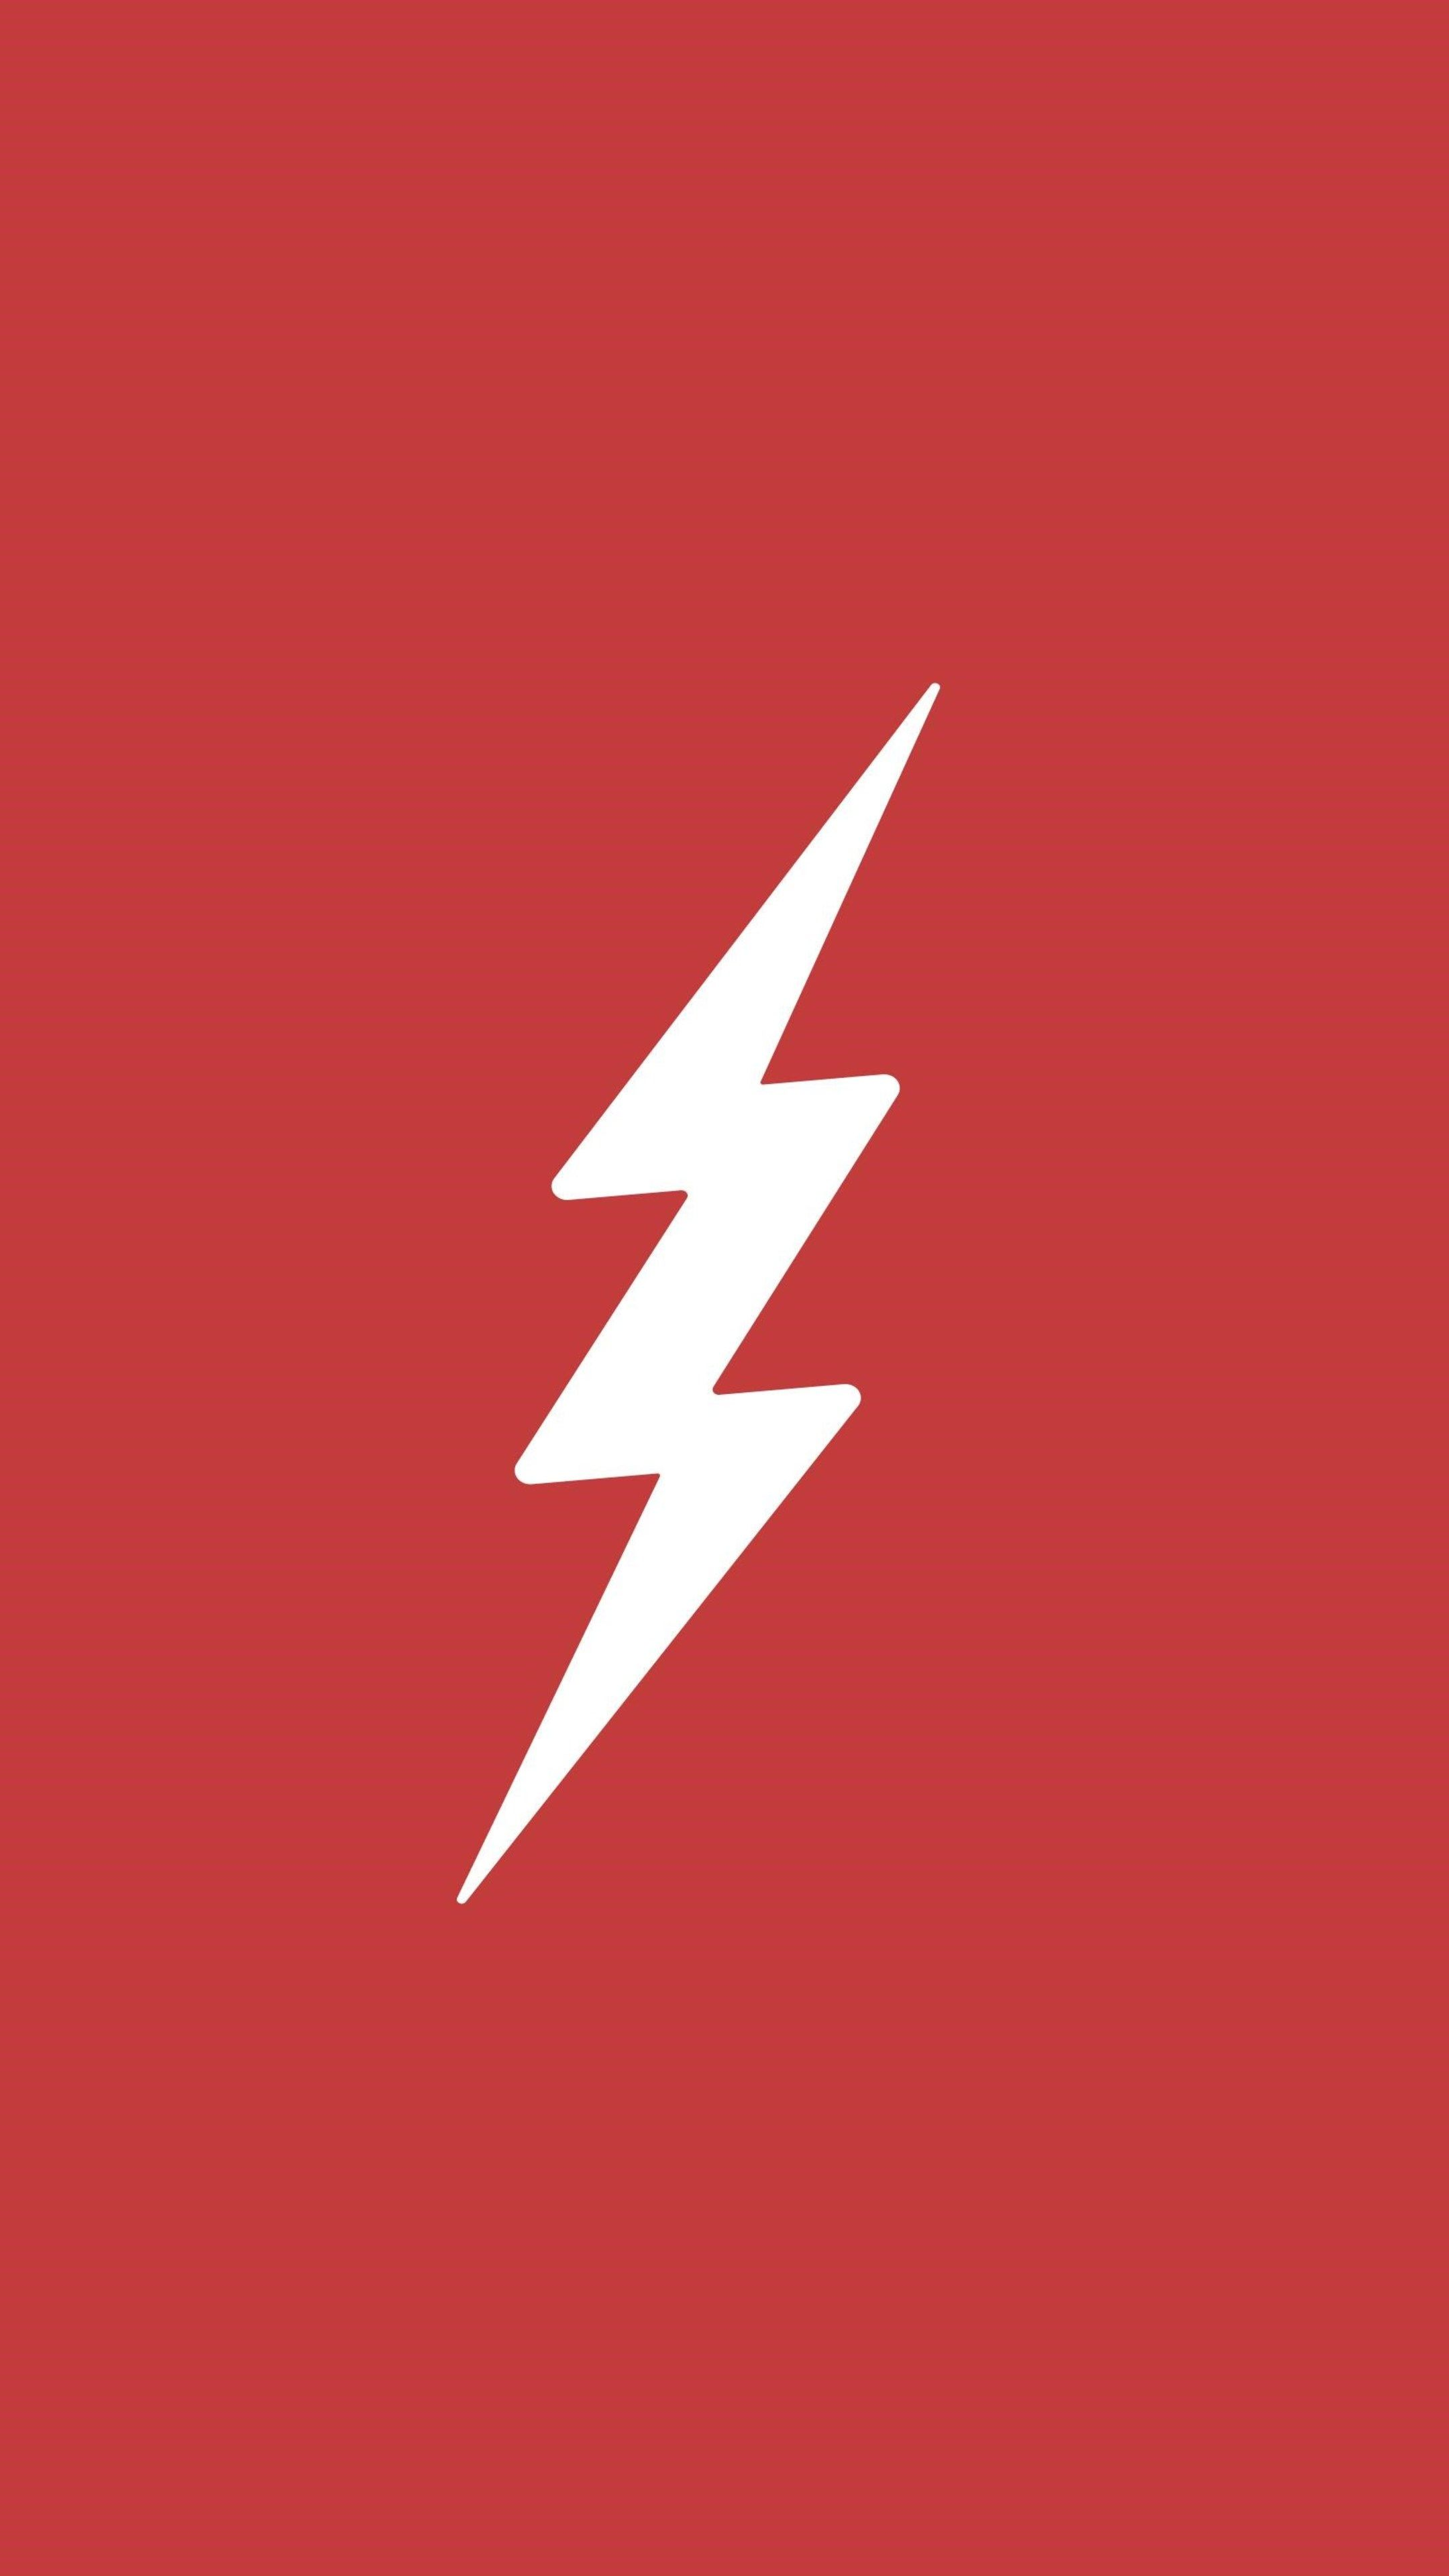 Misc Flash Logo Minimalism Wallpapers Cool Phone Wallpapers